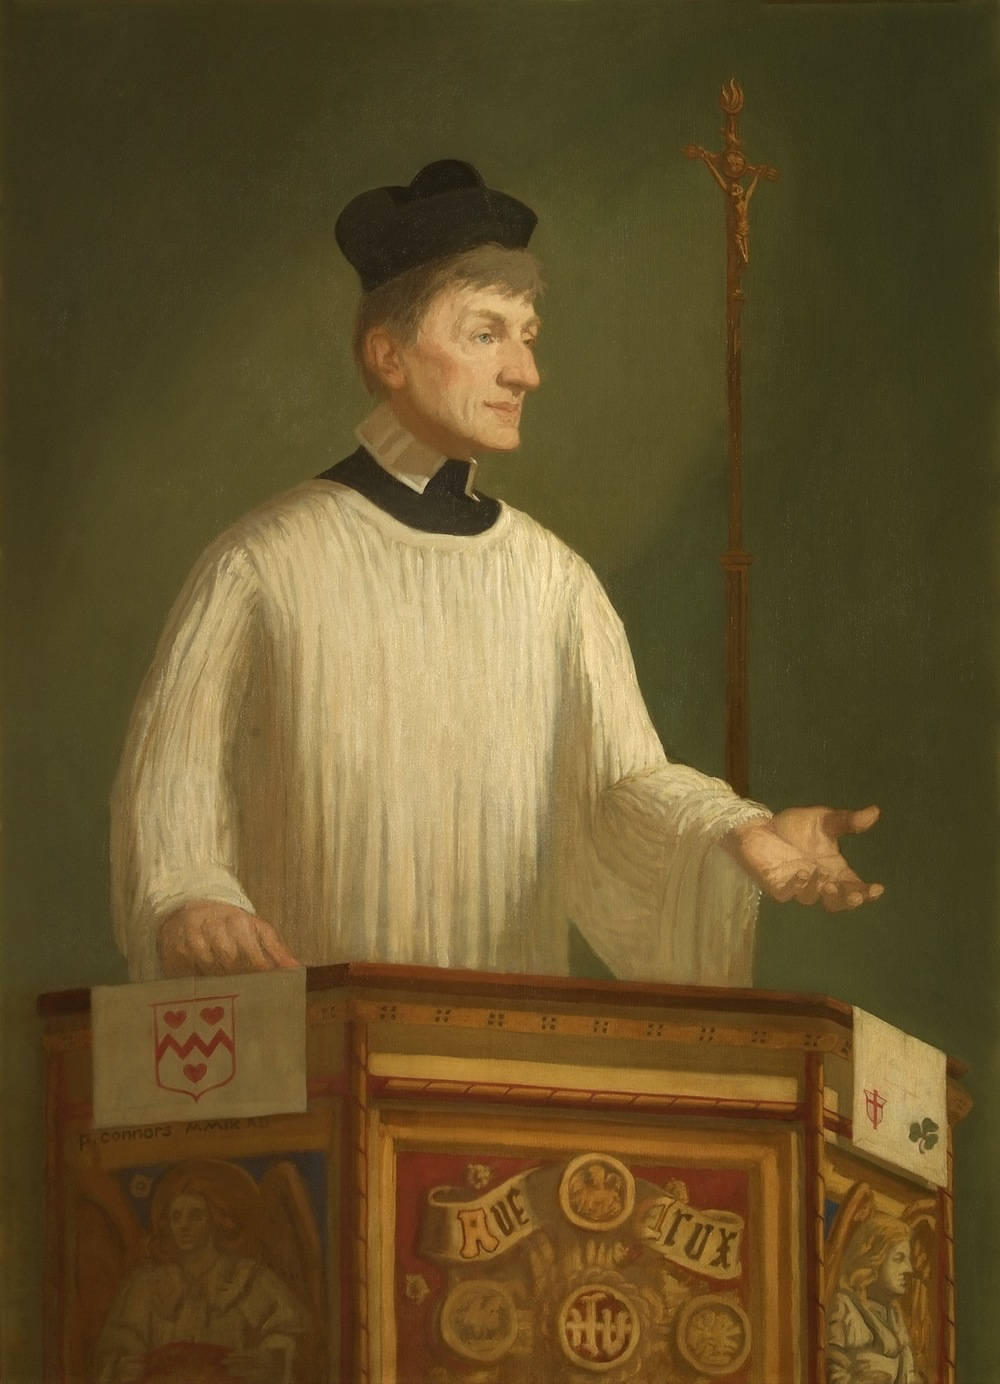 Blessed John Henry Newman, 48 x 36 inches, oil on linen